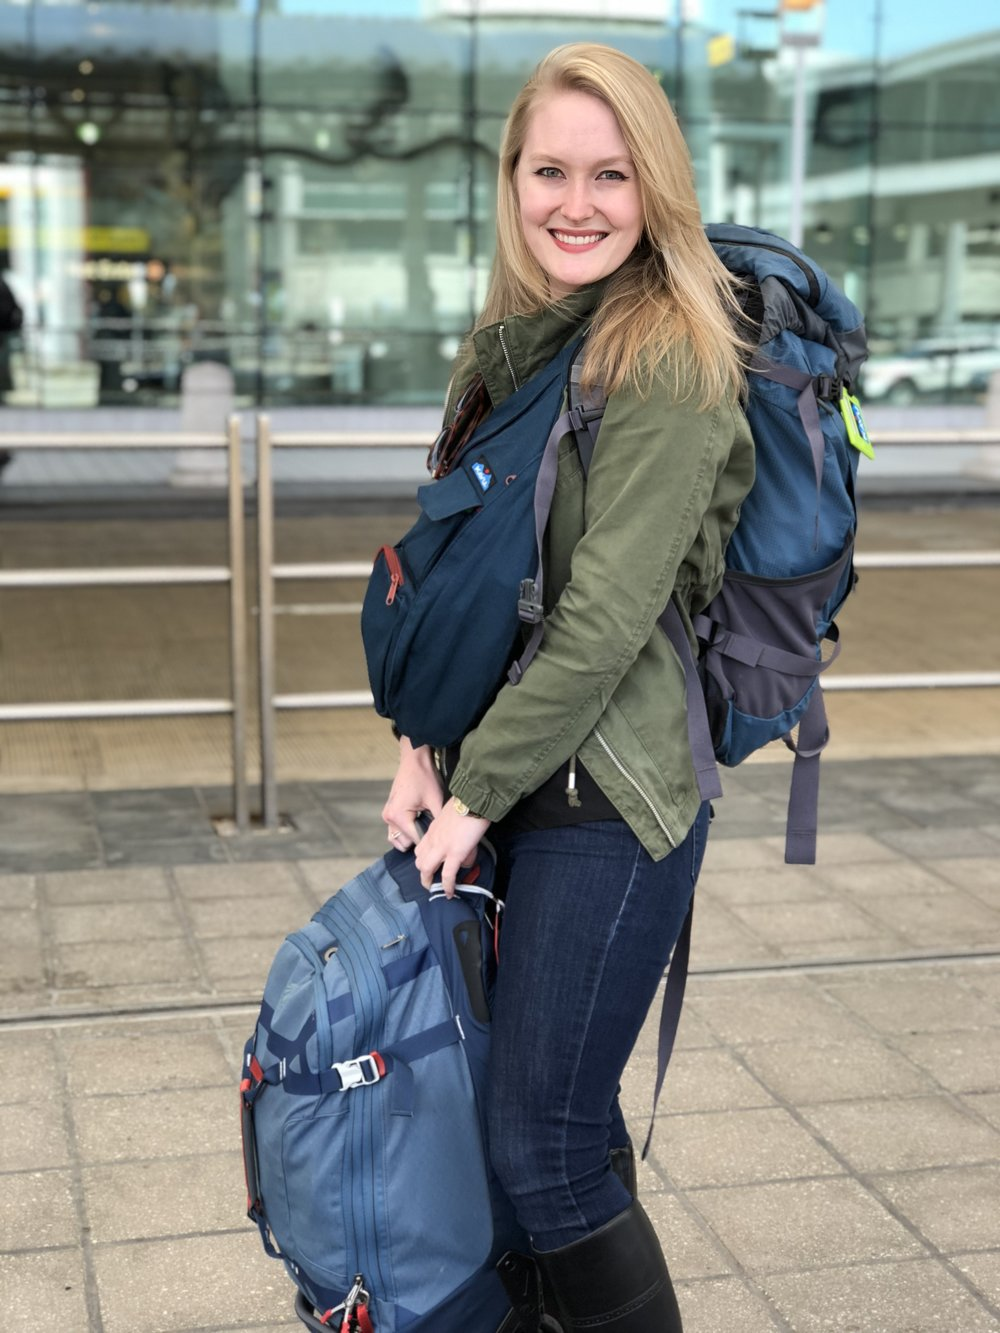 Modern-day solo travel: Me with my favorite bags for long trips!